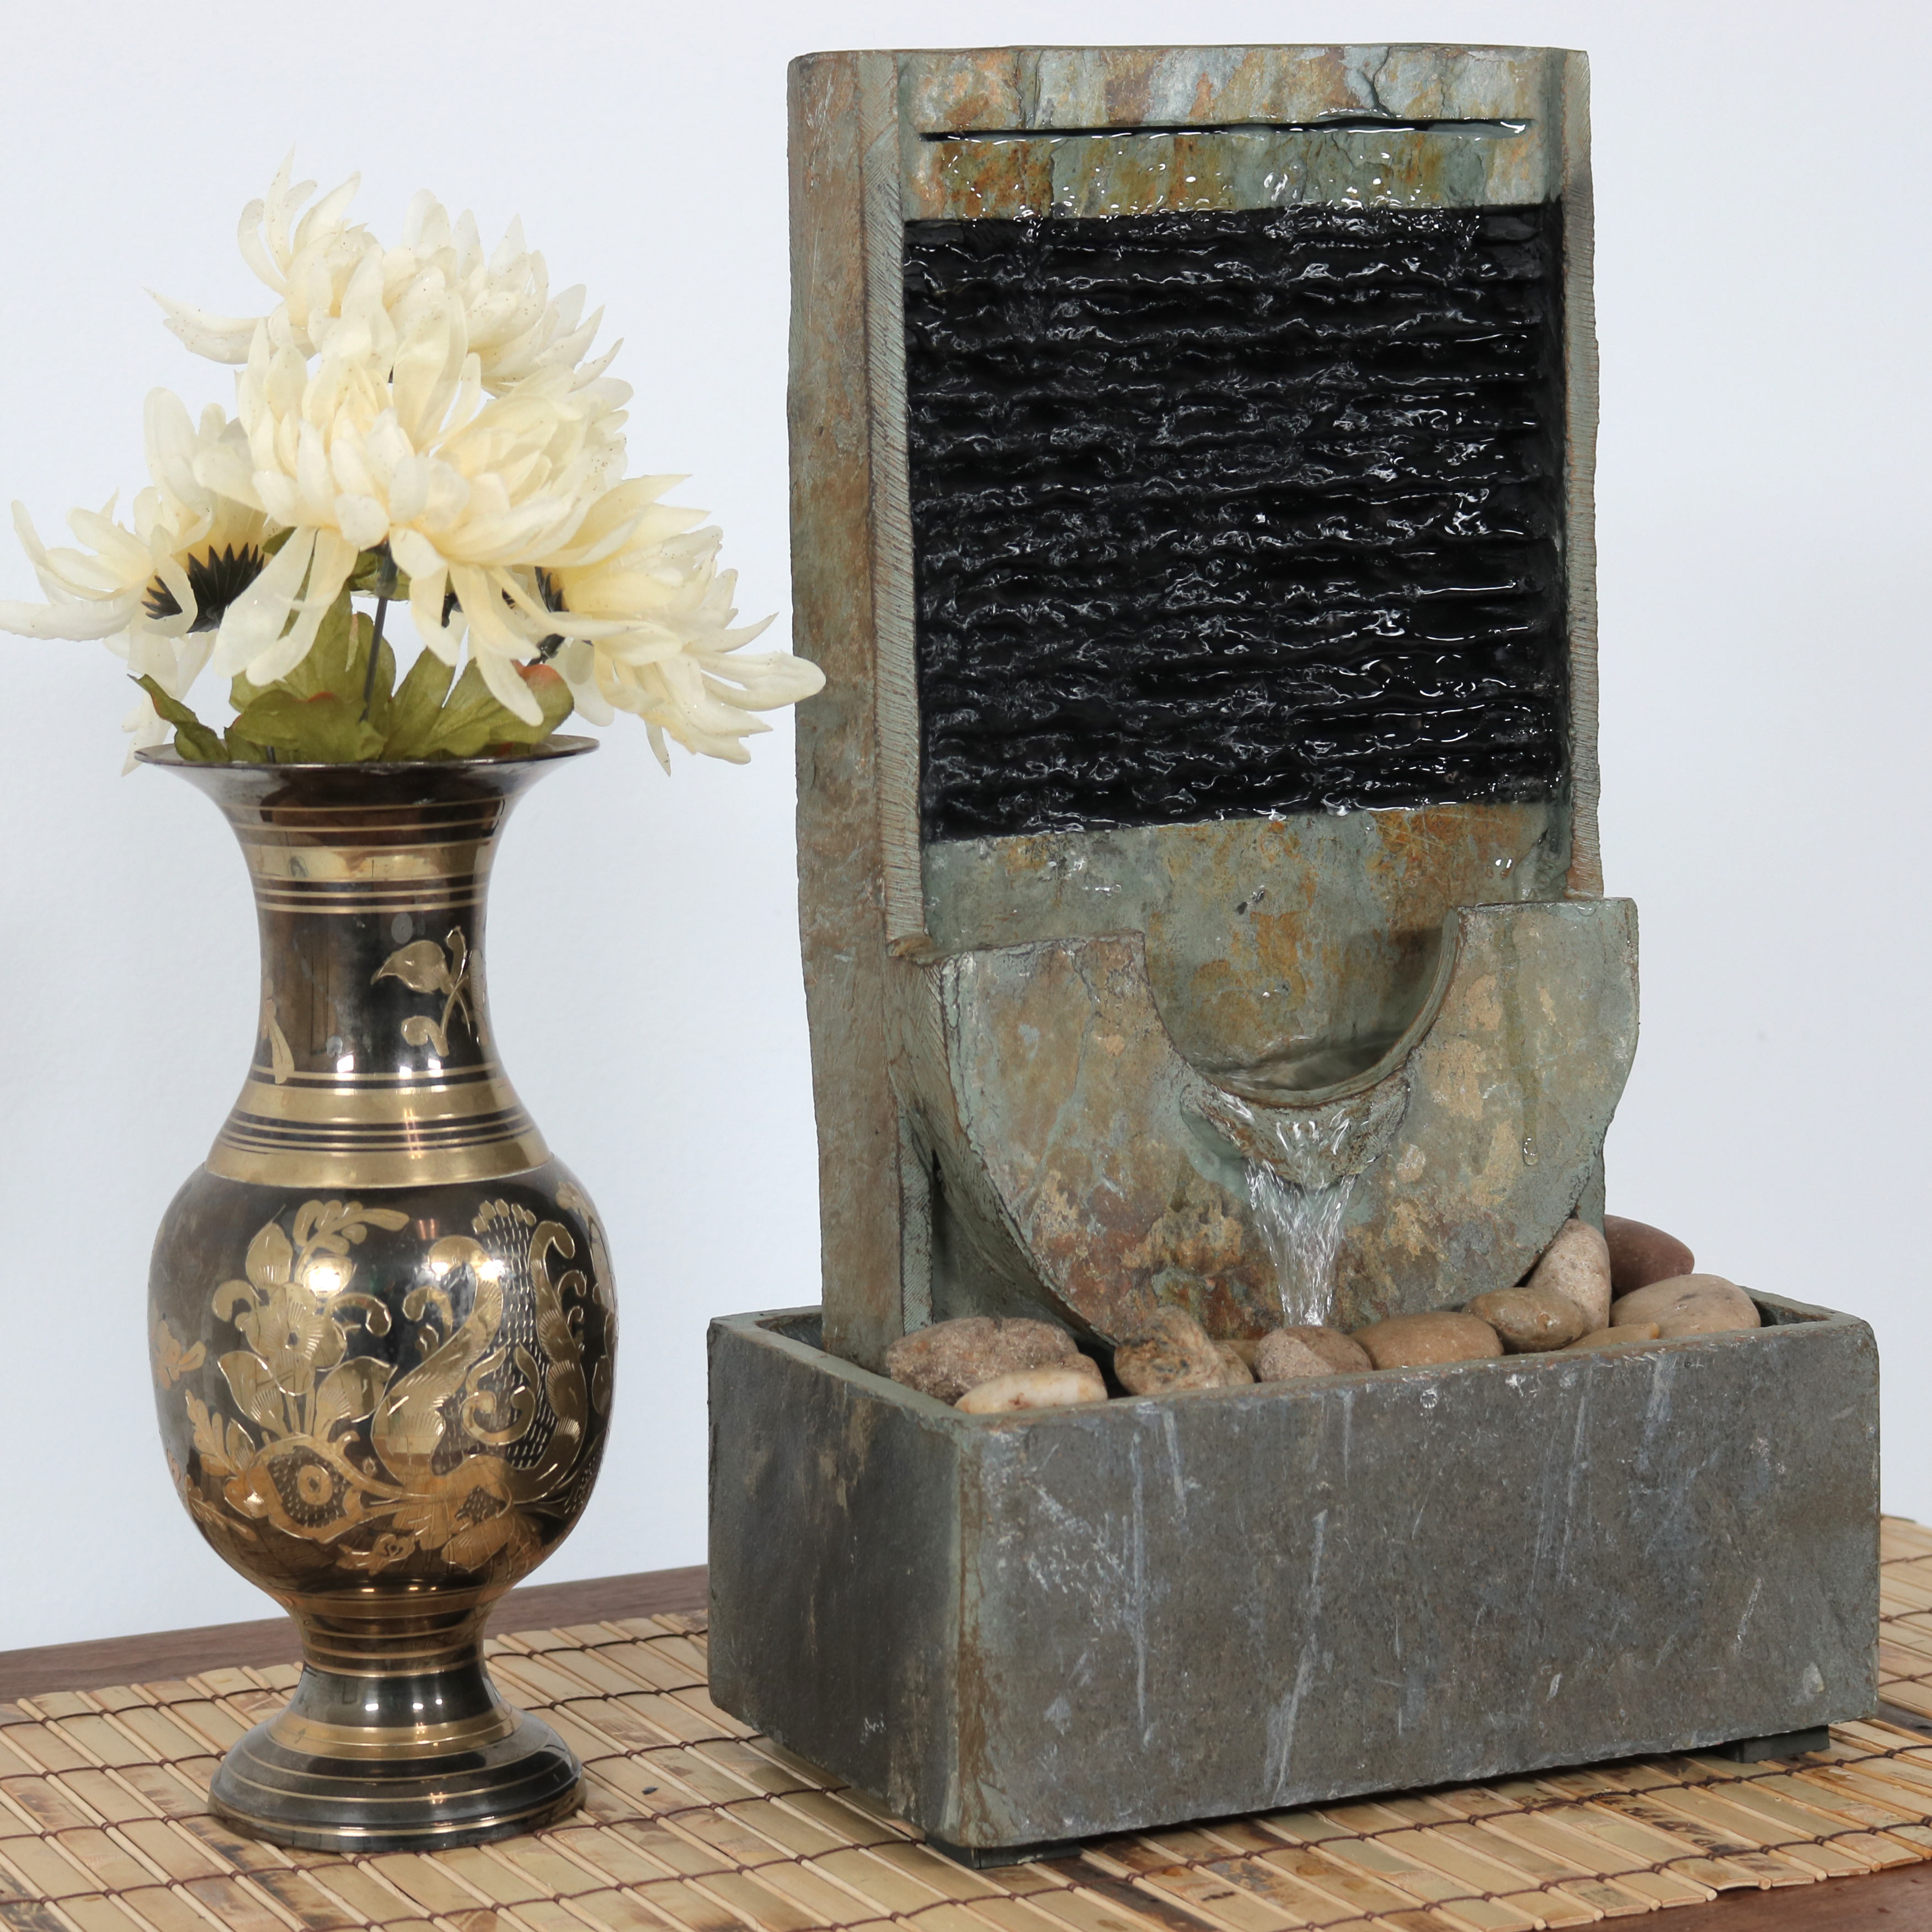 Sunnydaze Half Moon Slate Indoor Tabletop Water Fountain Picture 681